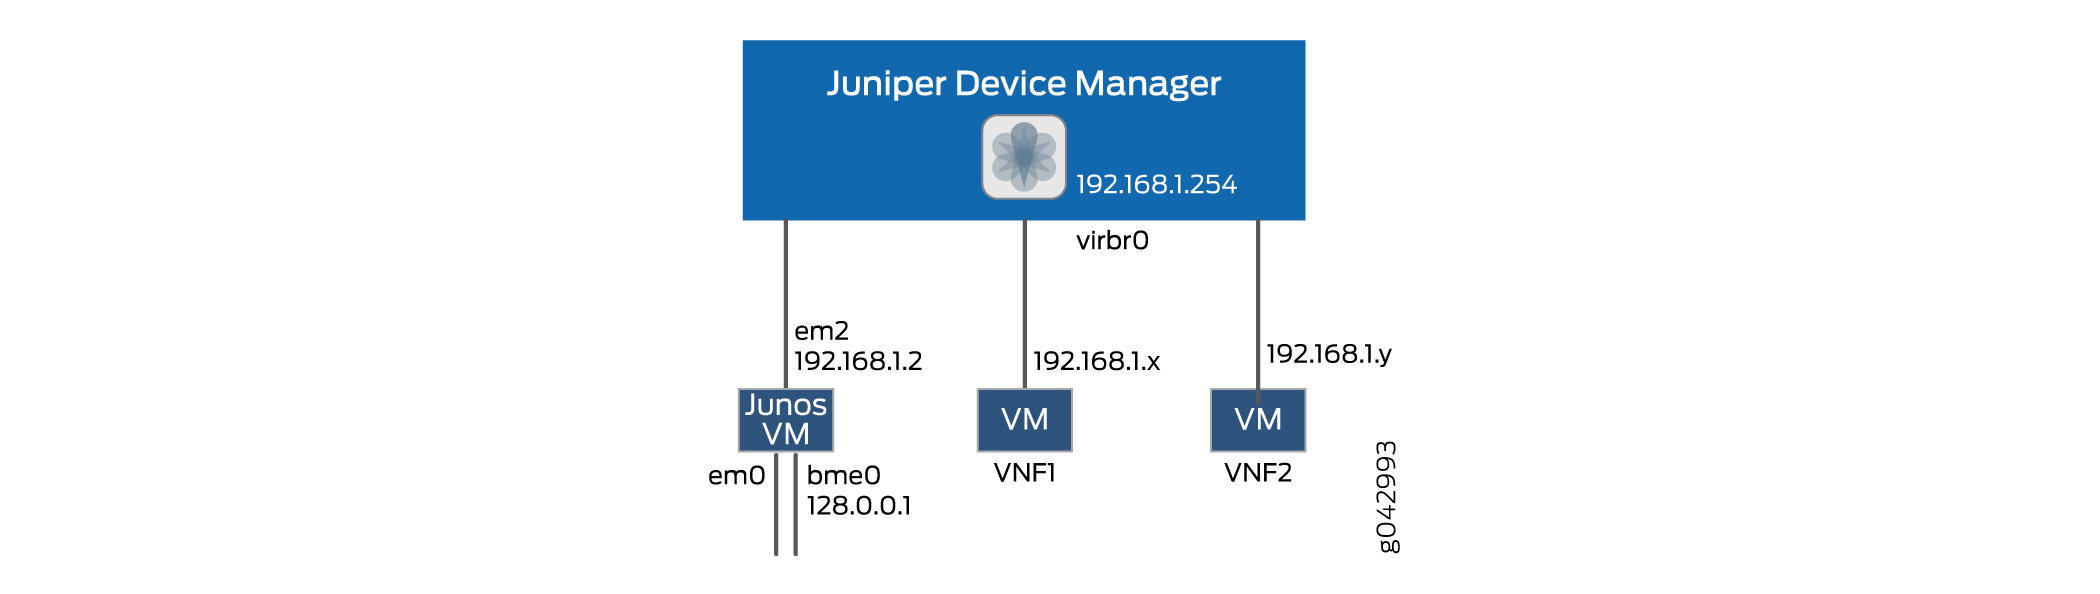 Managing Virtual Network Functions Using JDM - TechLibrary